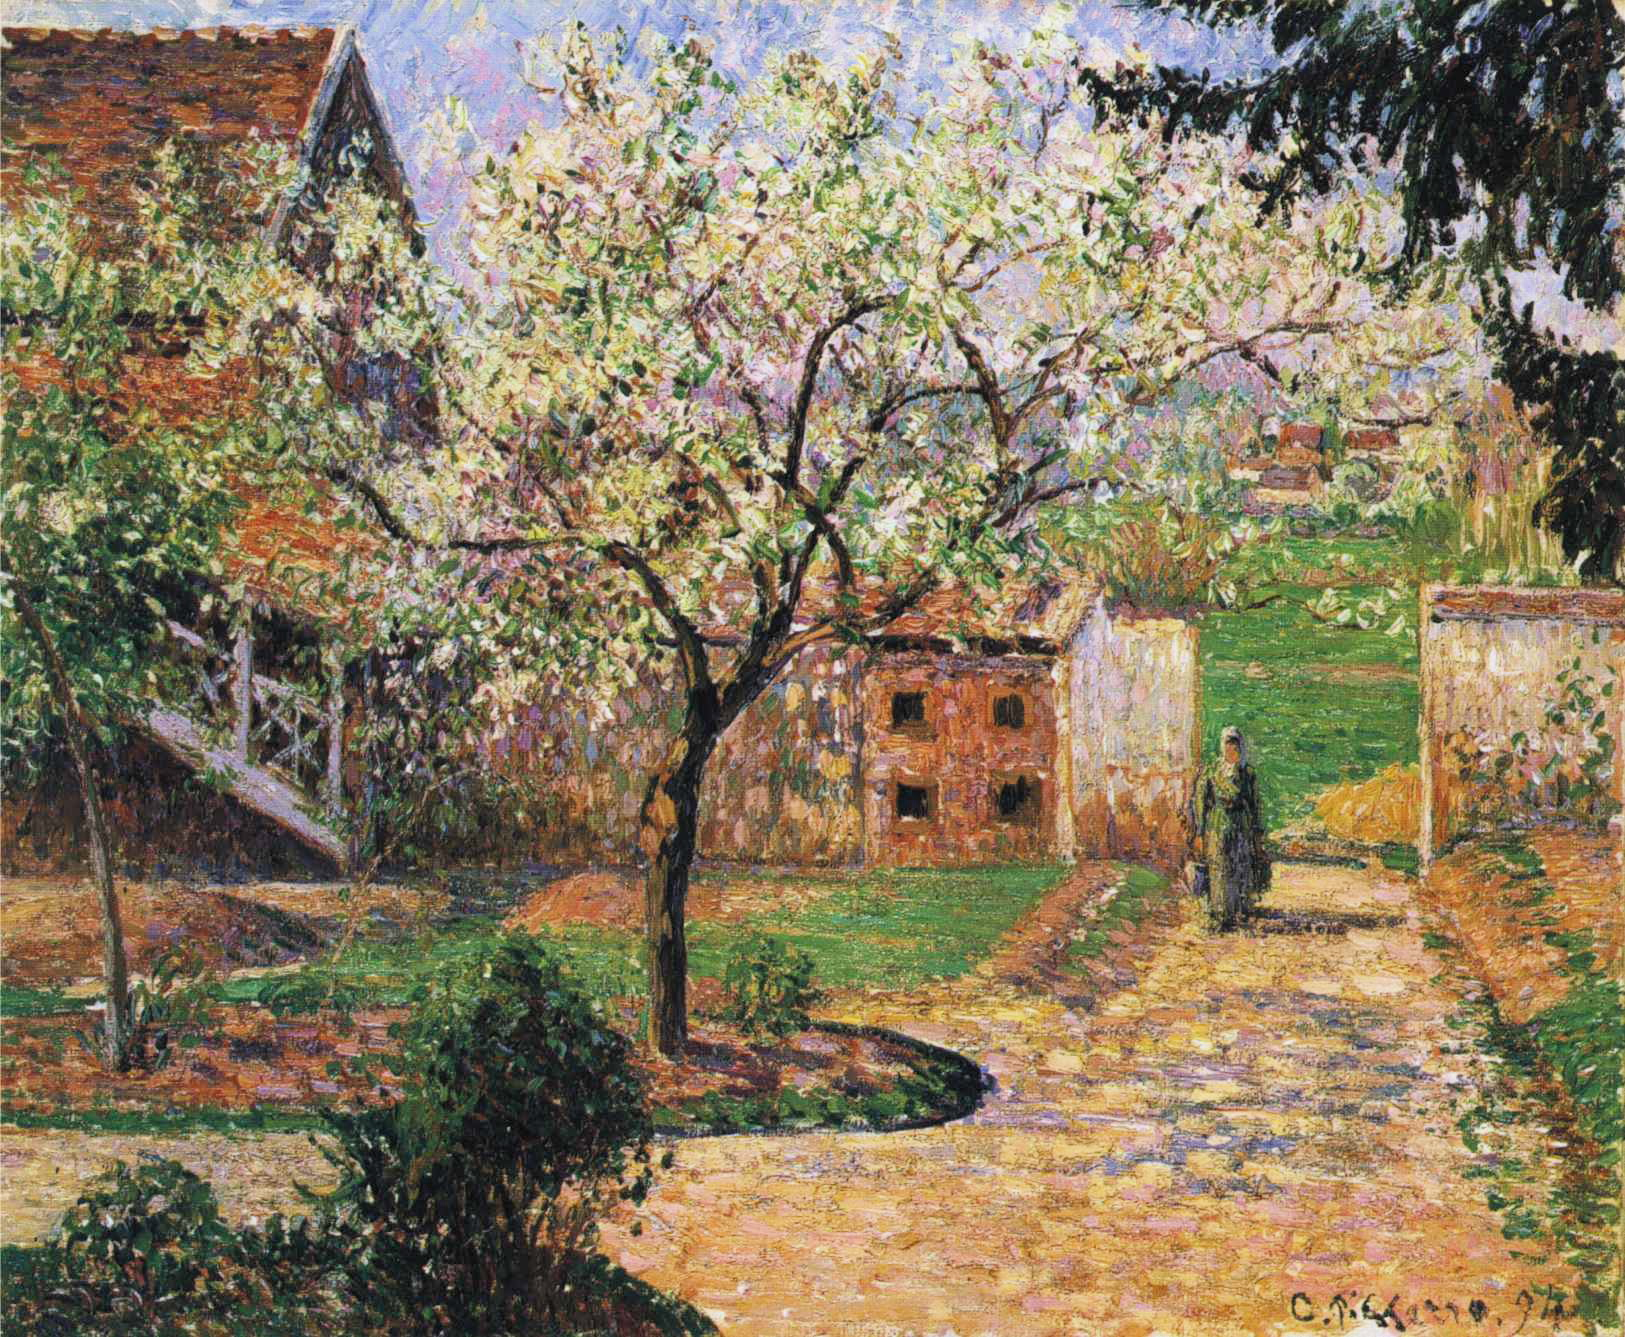 Camille Pissarro, Plum Trees in Blossom, Éragny, 1894, part of Gauguin and the Impressionists exhibition at the Royal Academy, London. Collection of Ordrupgaard Museum, Charlottenlund, Denmark.